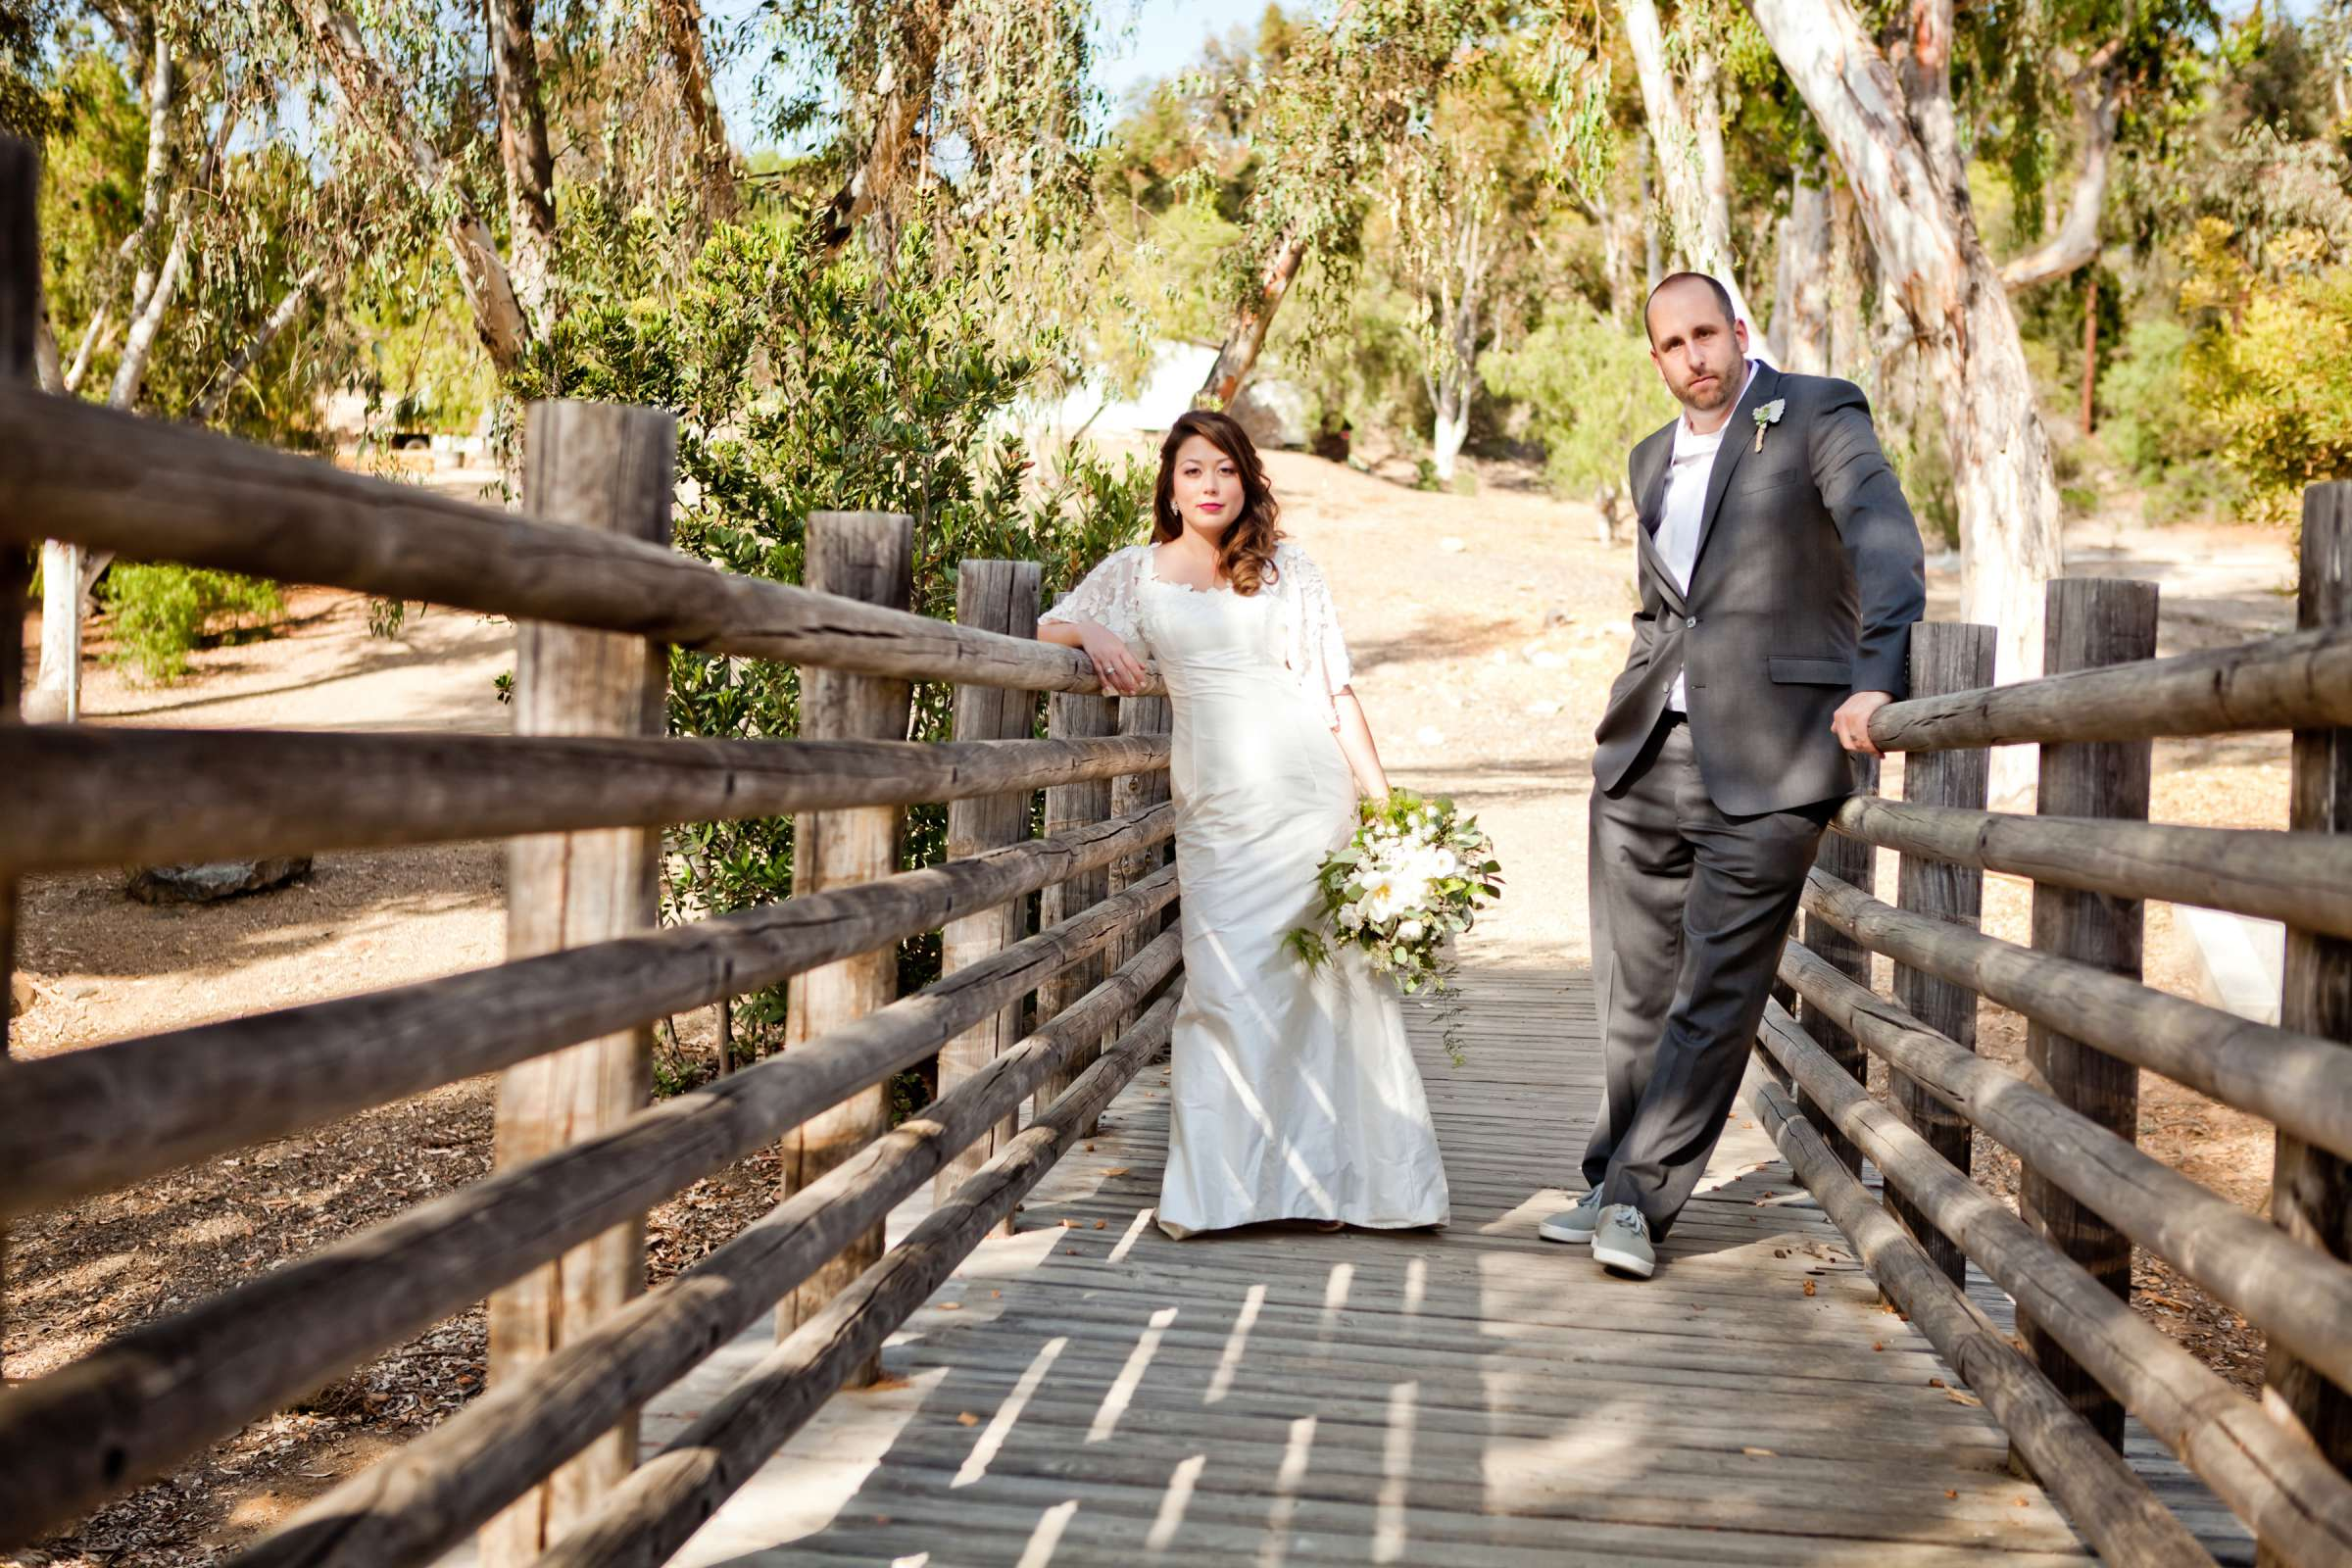 Leo Carrillo Ranch Wedding coordinated by Weddings by Lisa Nicole, Bethany and Aaron Wedding Photo #31 by True Photography